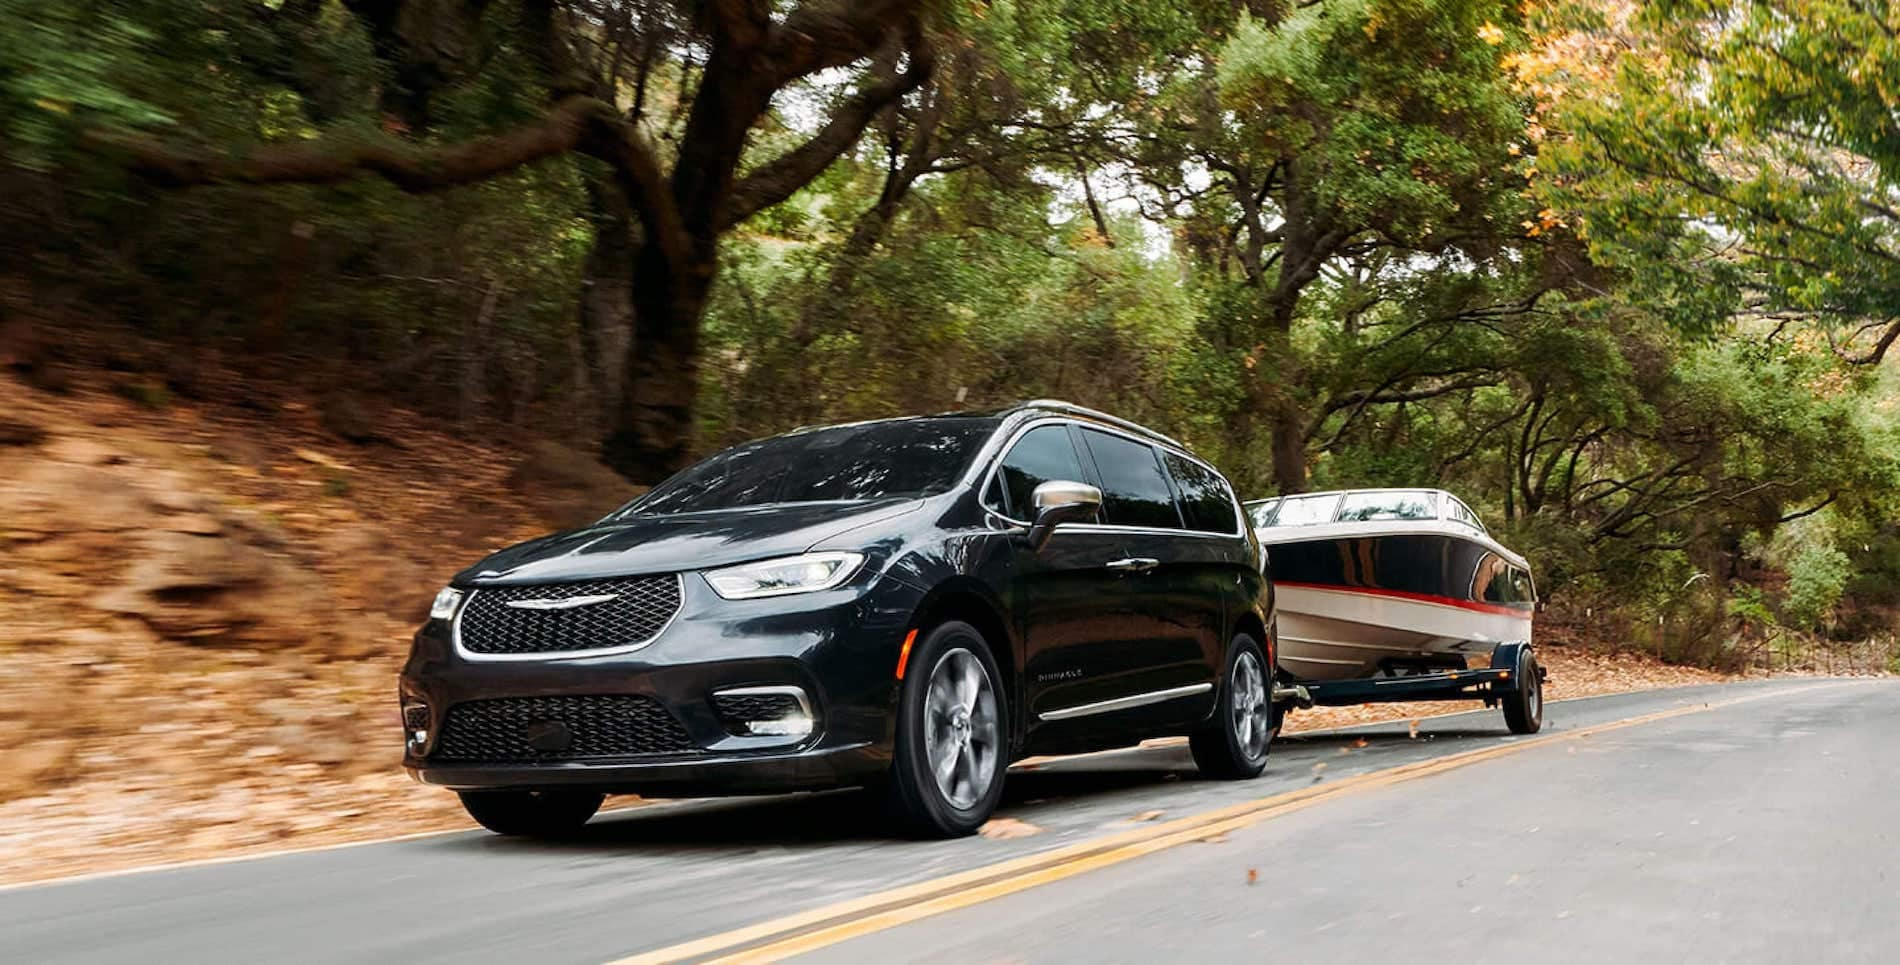 2021 Chrysler Pacifica engine and capabilities